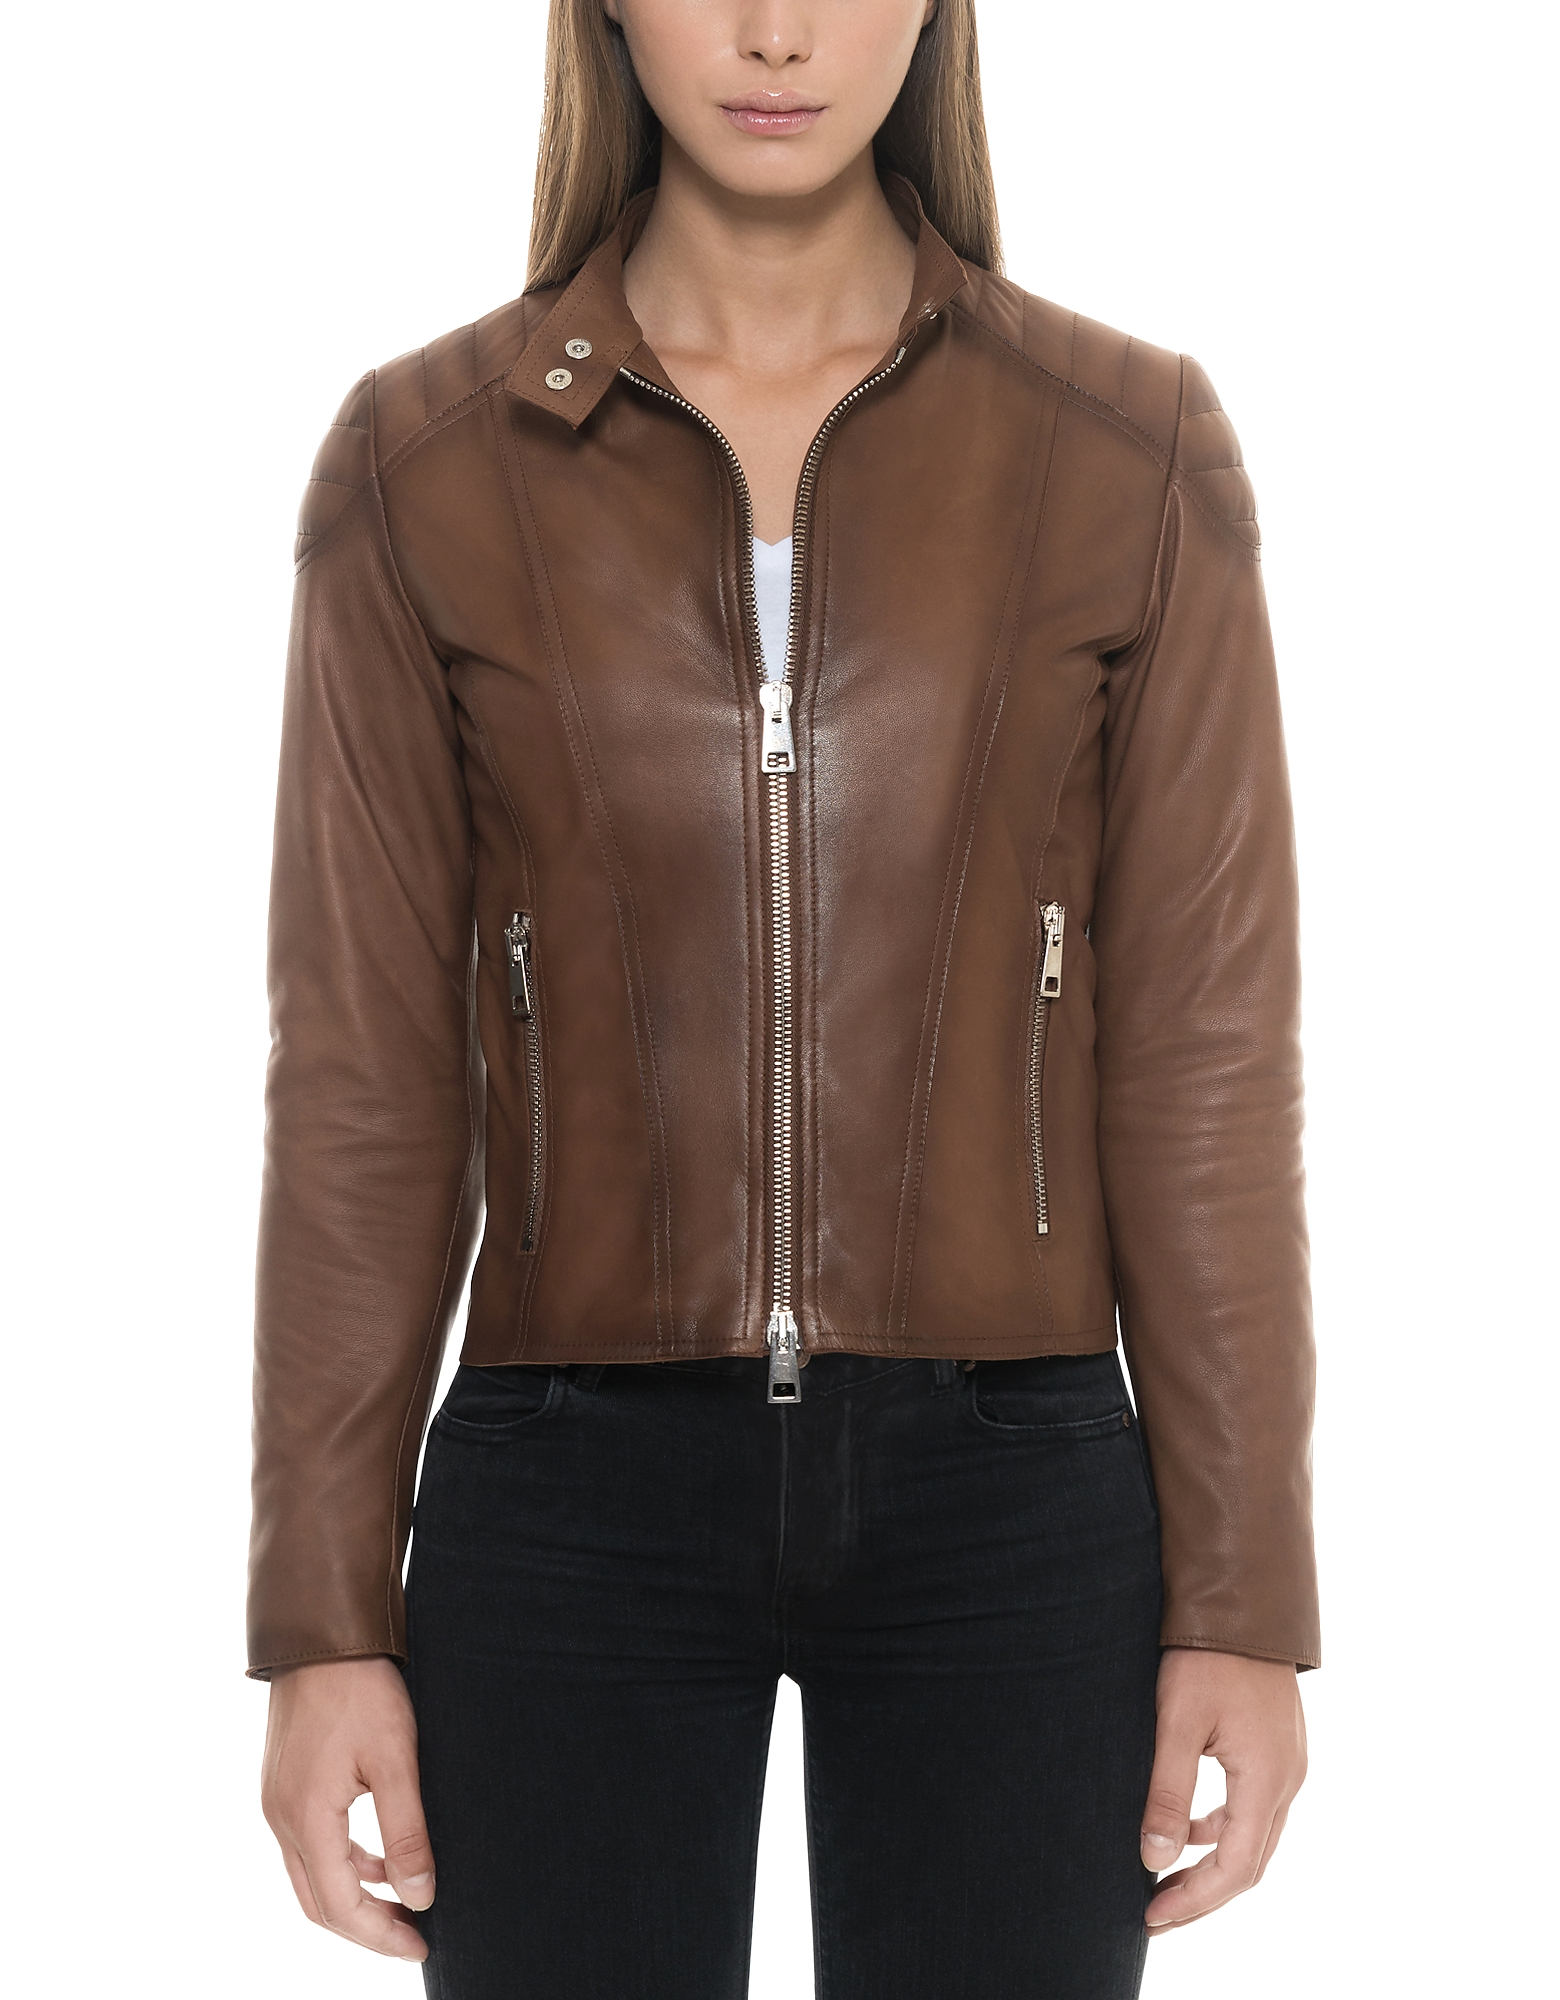 Forzieri Leather Jackets, Brown Padded Leather Women's Zip Front Jacket